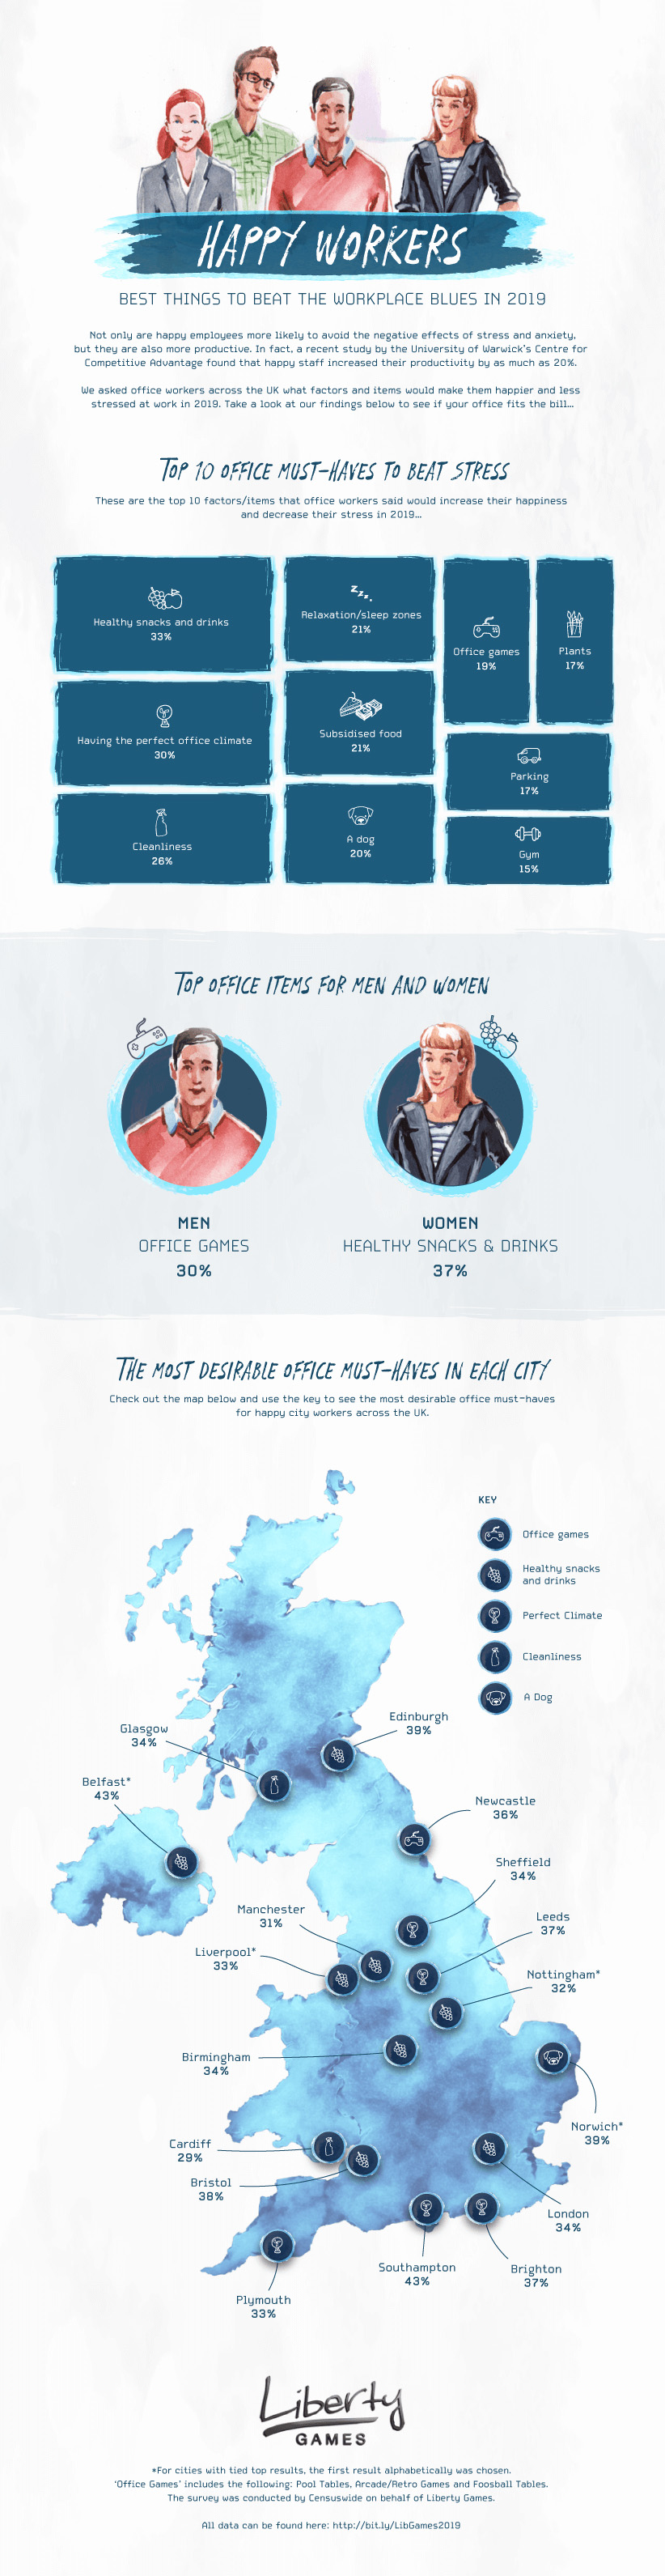 January Workplace Blues [Infographic]